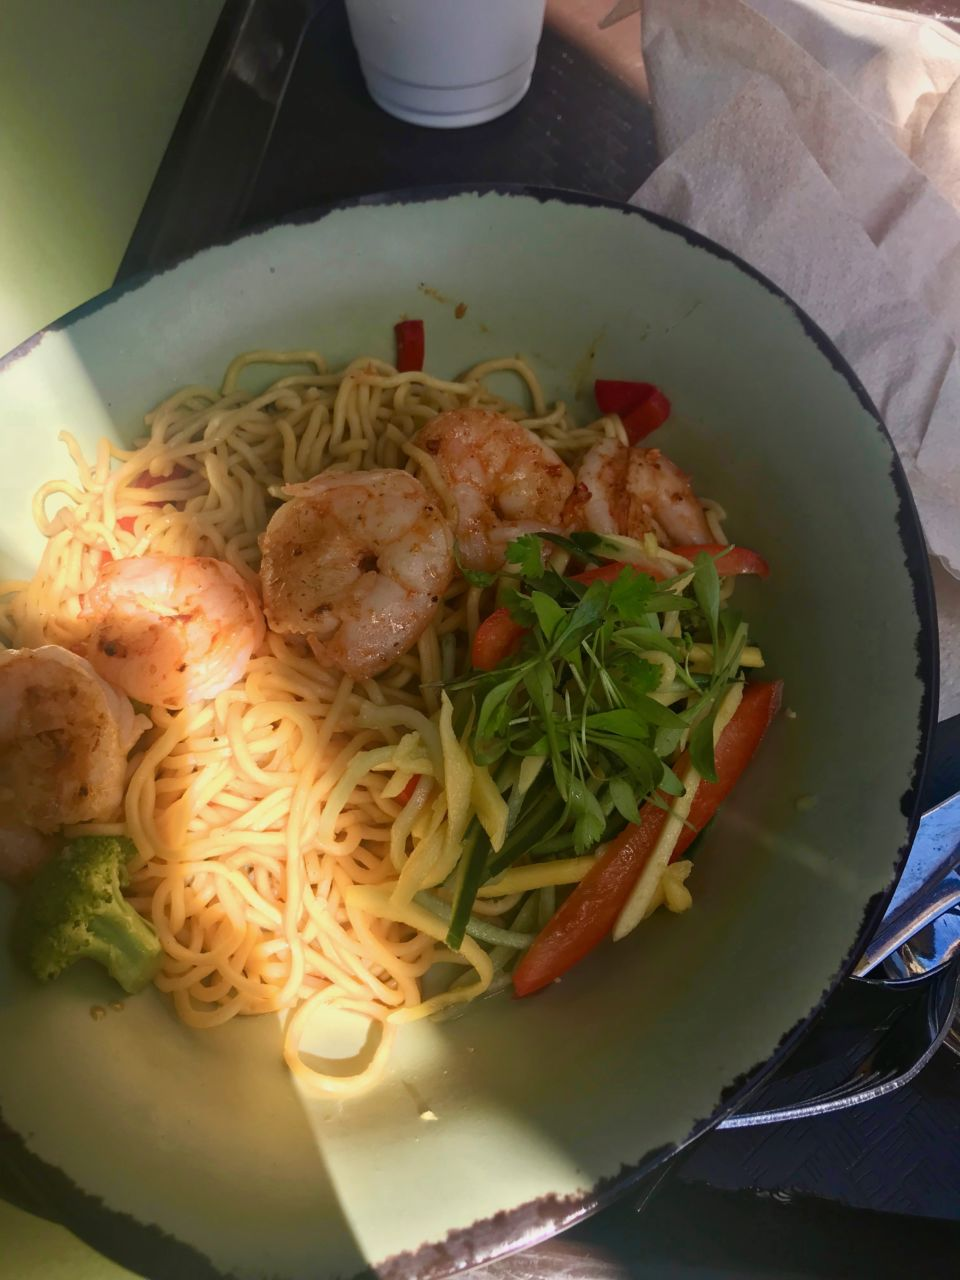 Animal Kingdom Pandora Satu'li Canteen dining review - shrimp & noodle bowl